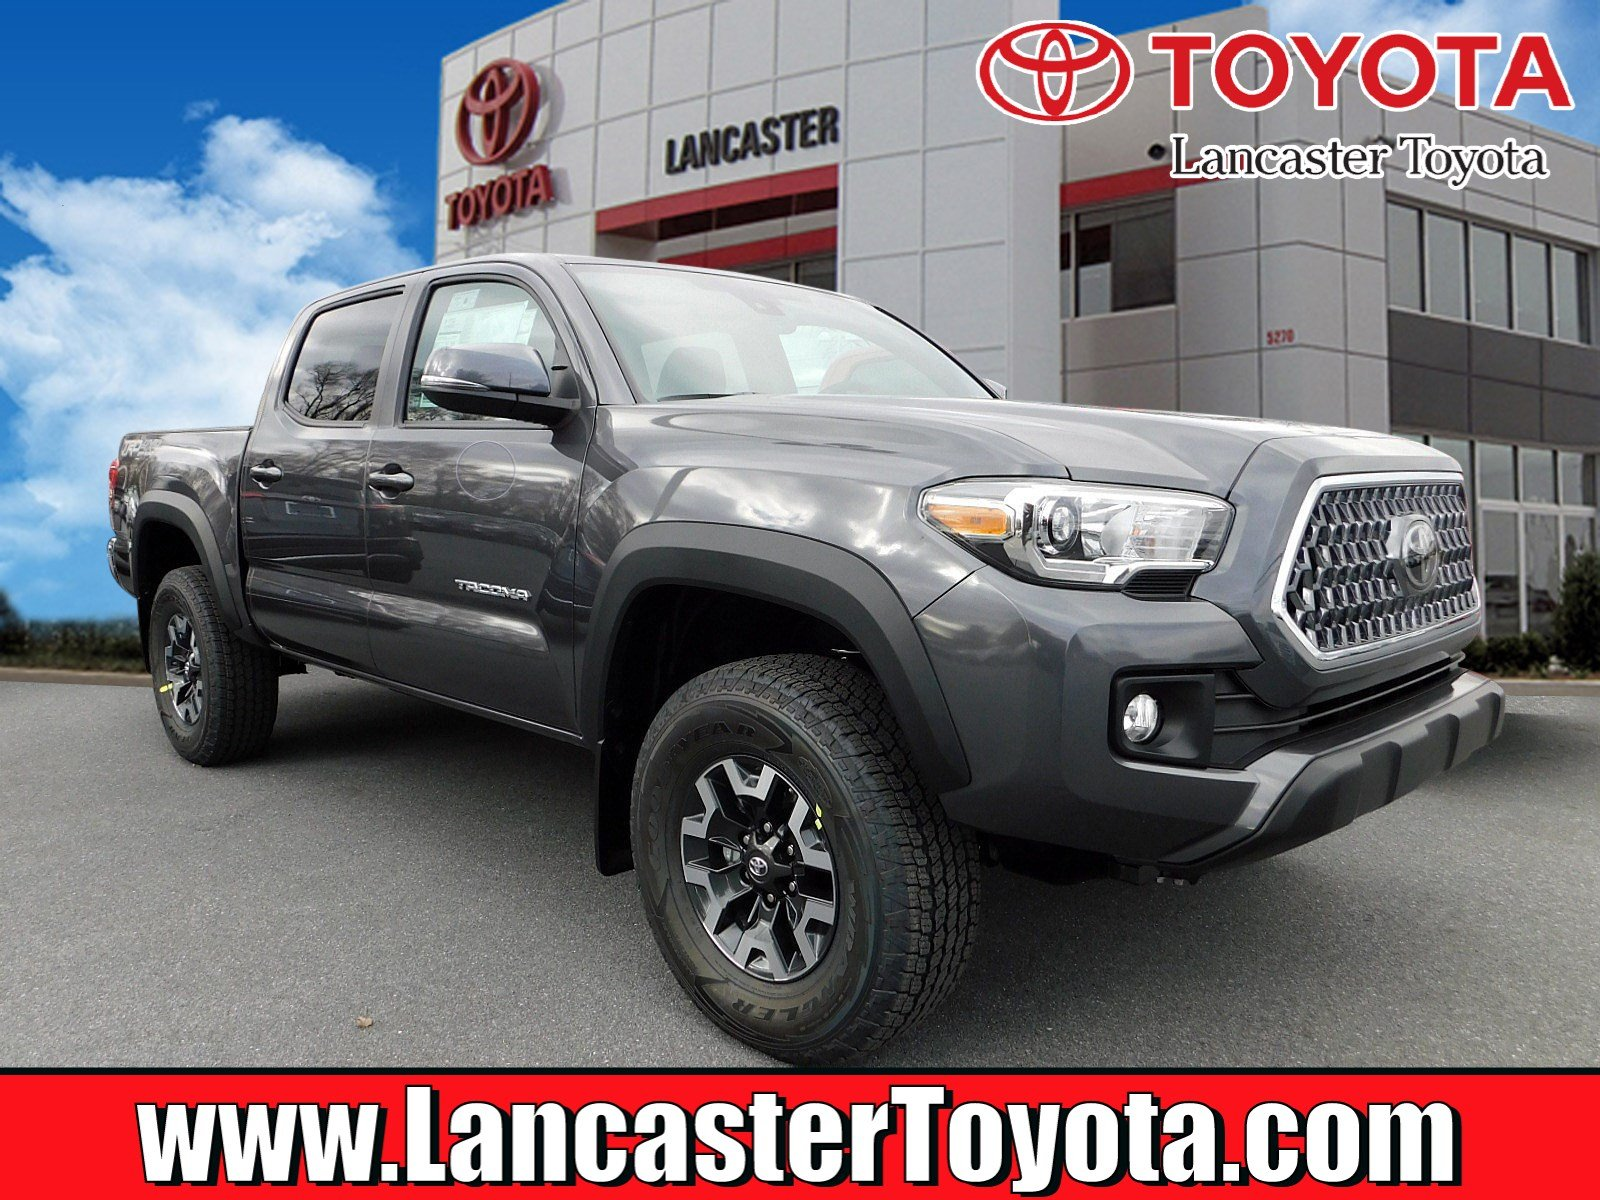 New 2019 Toyota Ta a TRD f Road Double Cab in East Petersburg